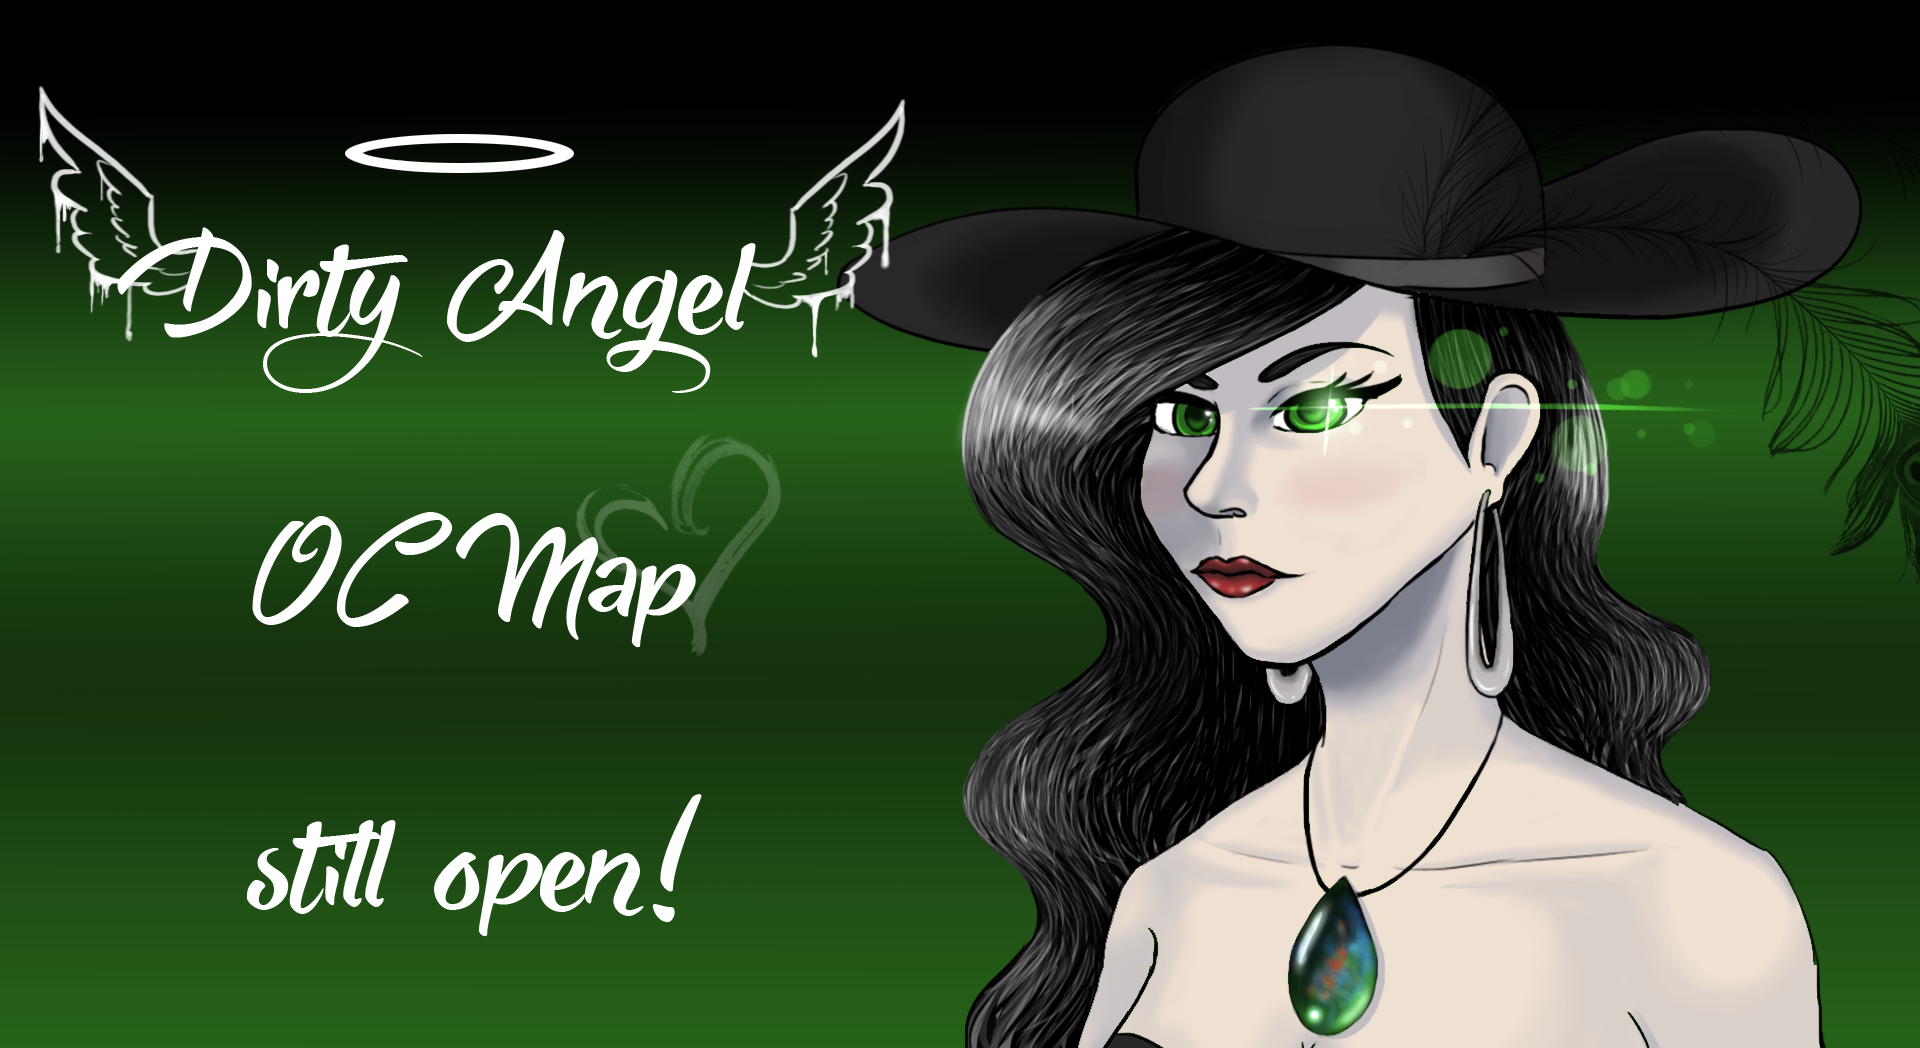 Dirty Angel OC MAP STILL OPEN! by hylidia